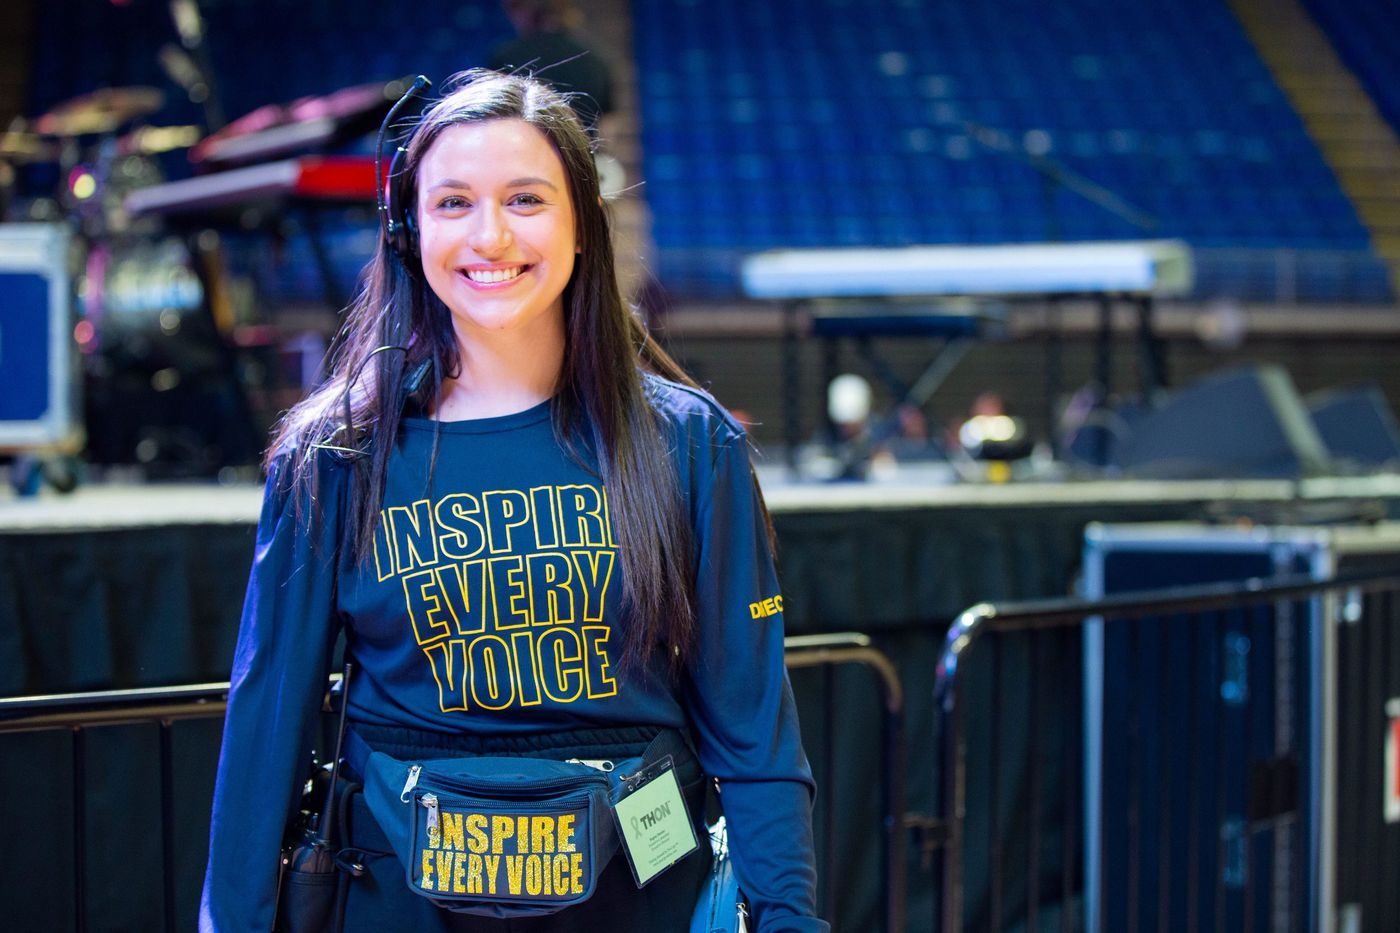 Led By Penn State Senior From Huntingdon Valley, THON2020 Raised $11.7M For Children's Cancer Research